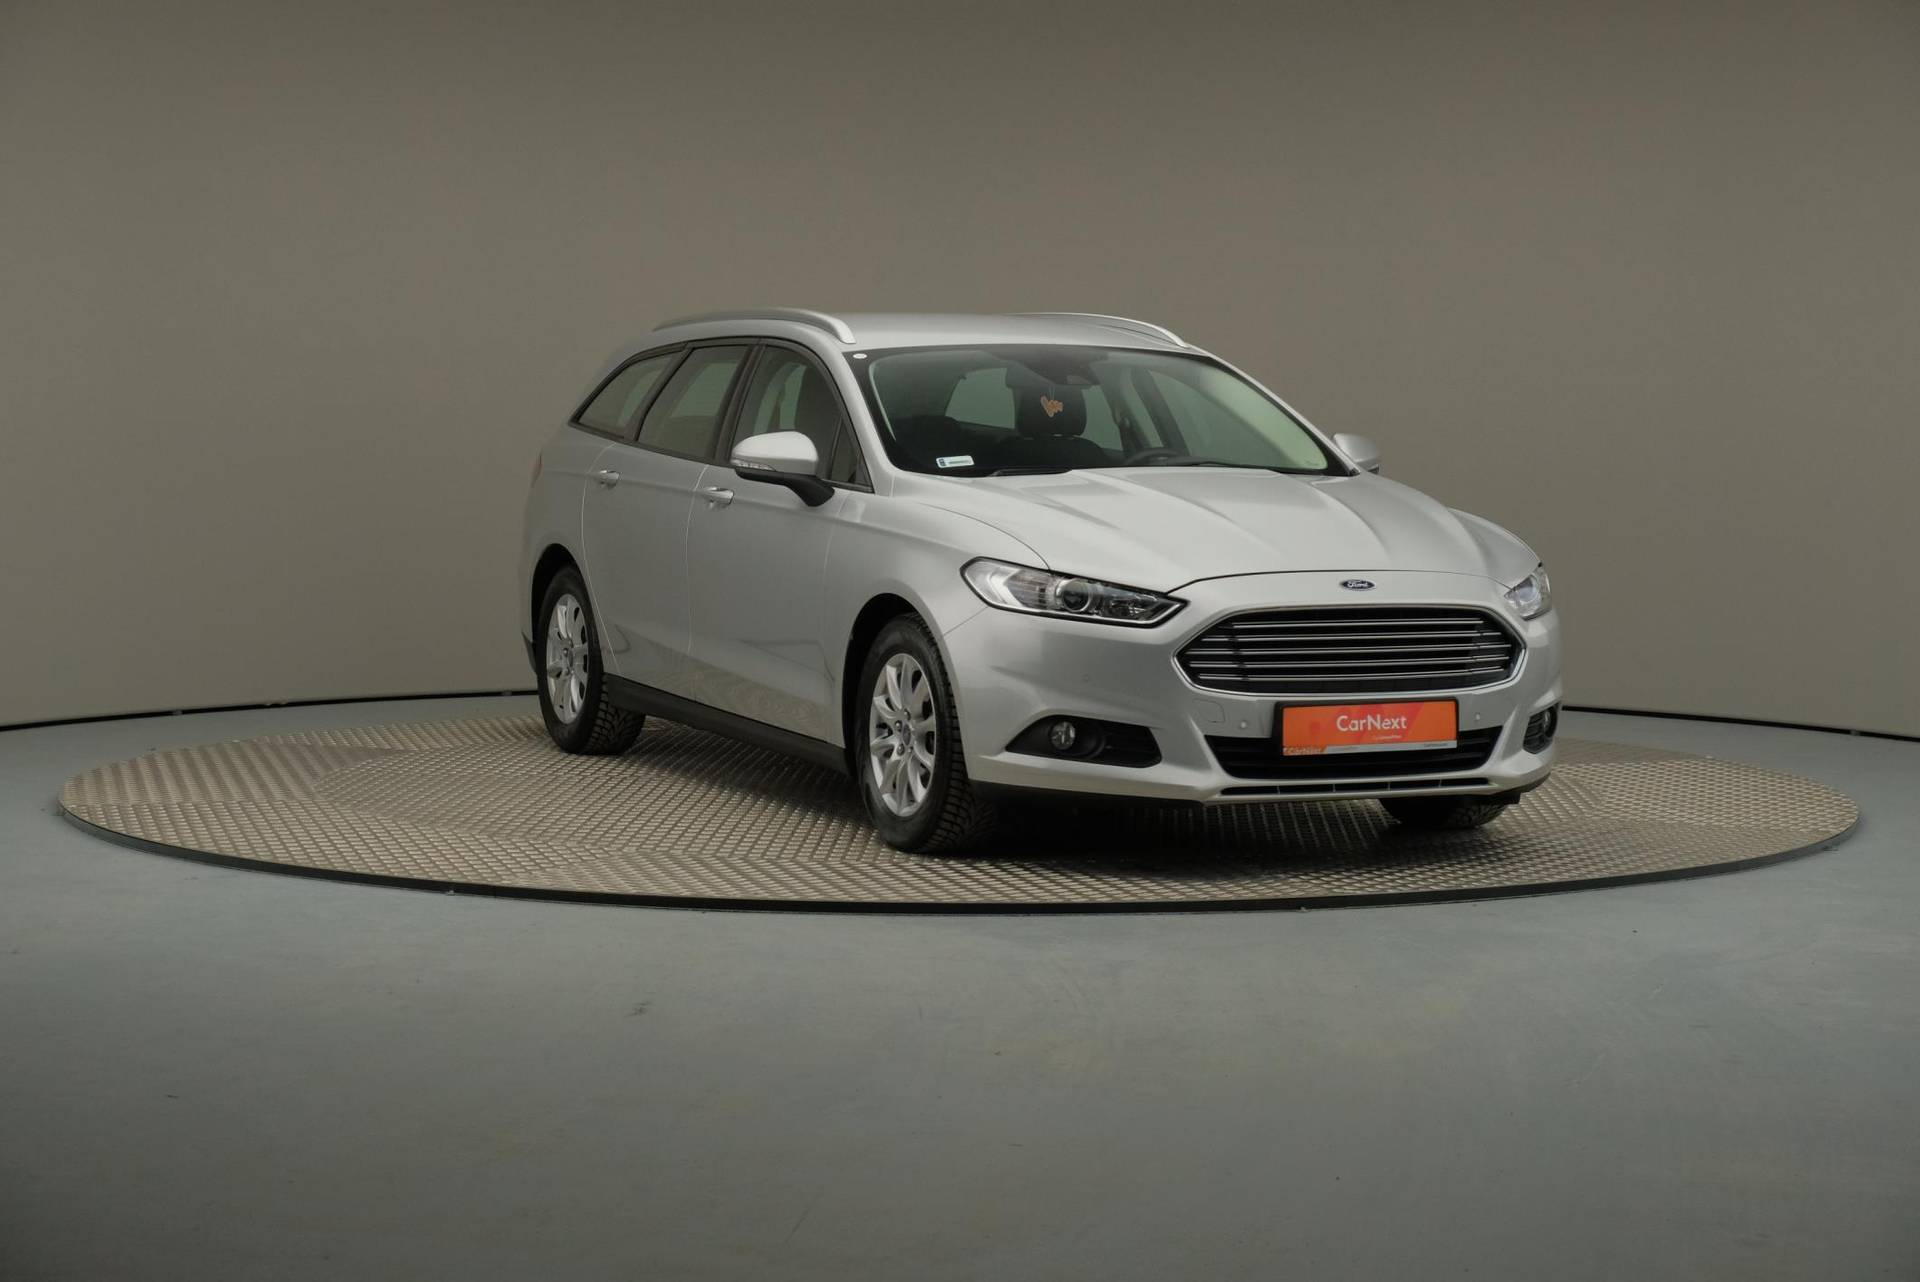 Ford Mondeo Turnier 1.5 Eco Boost Start-Stopp, Trend, 360-image29